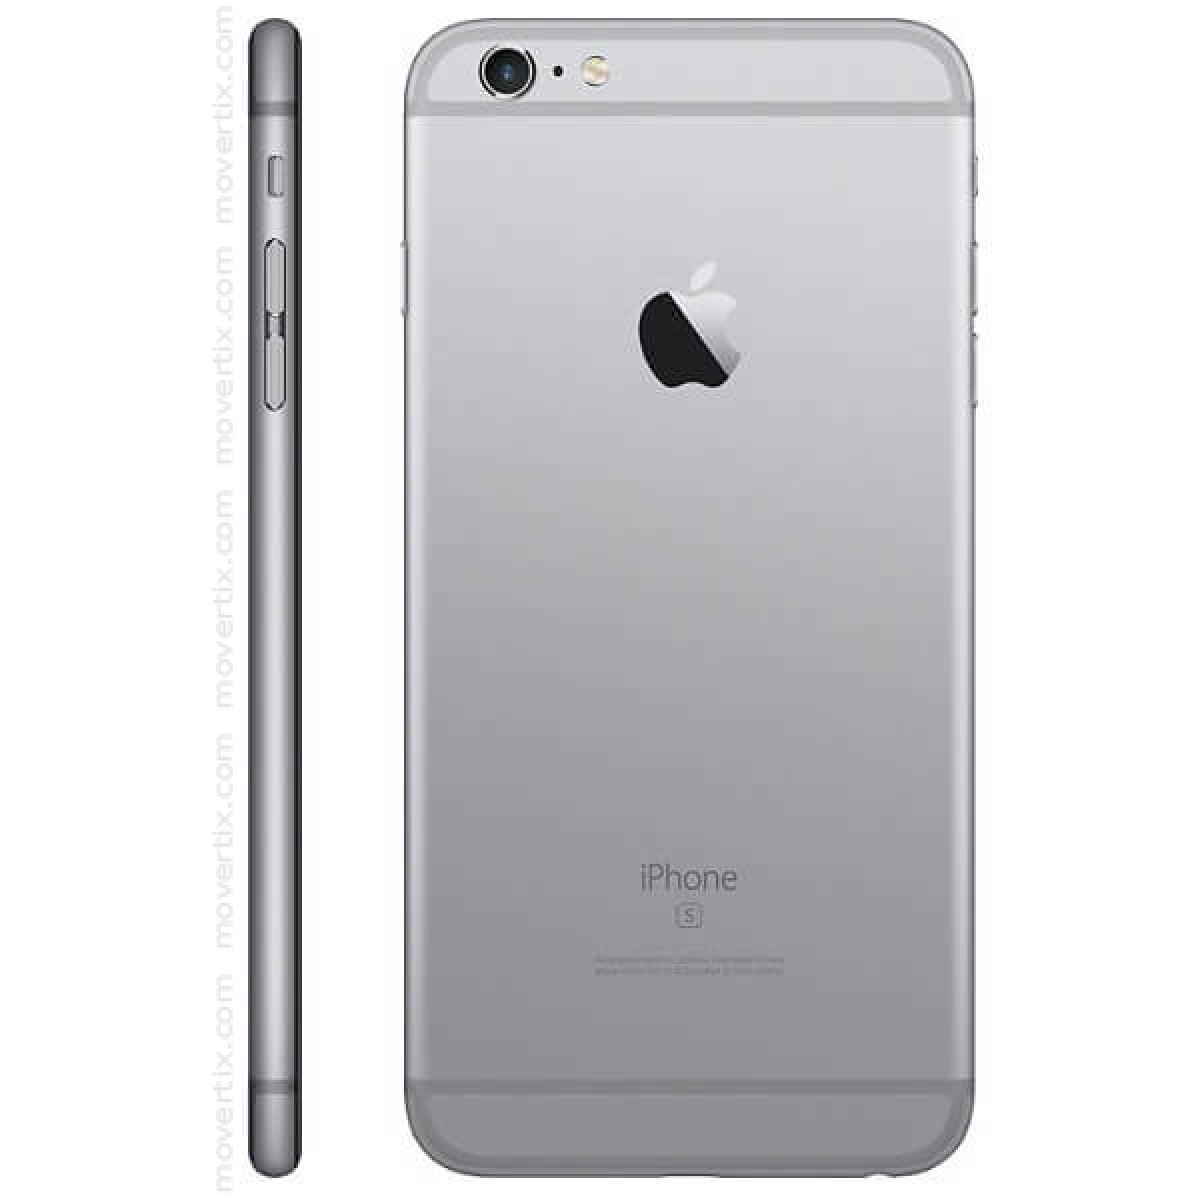 Apple Iphone Silver